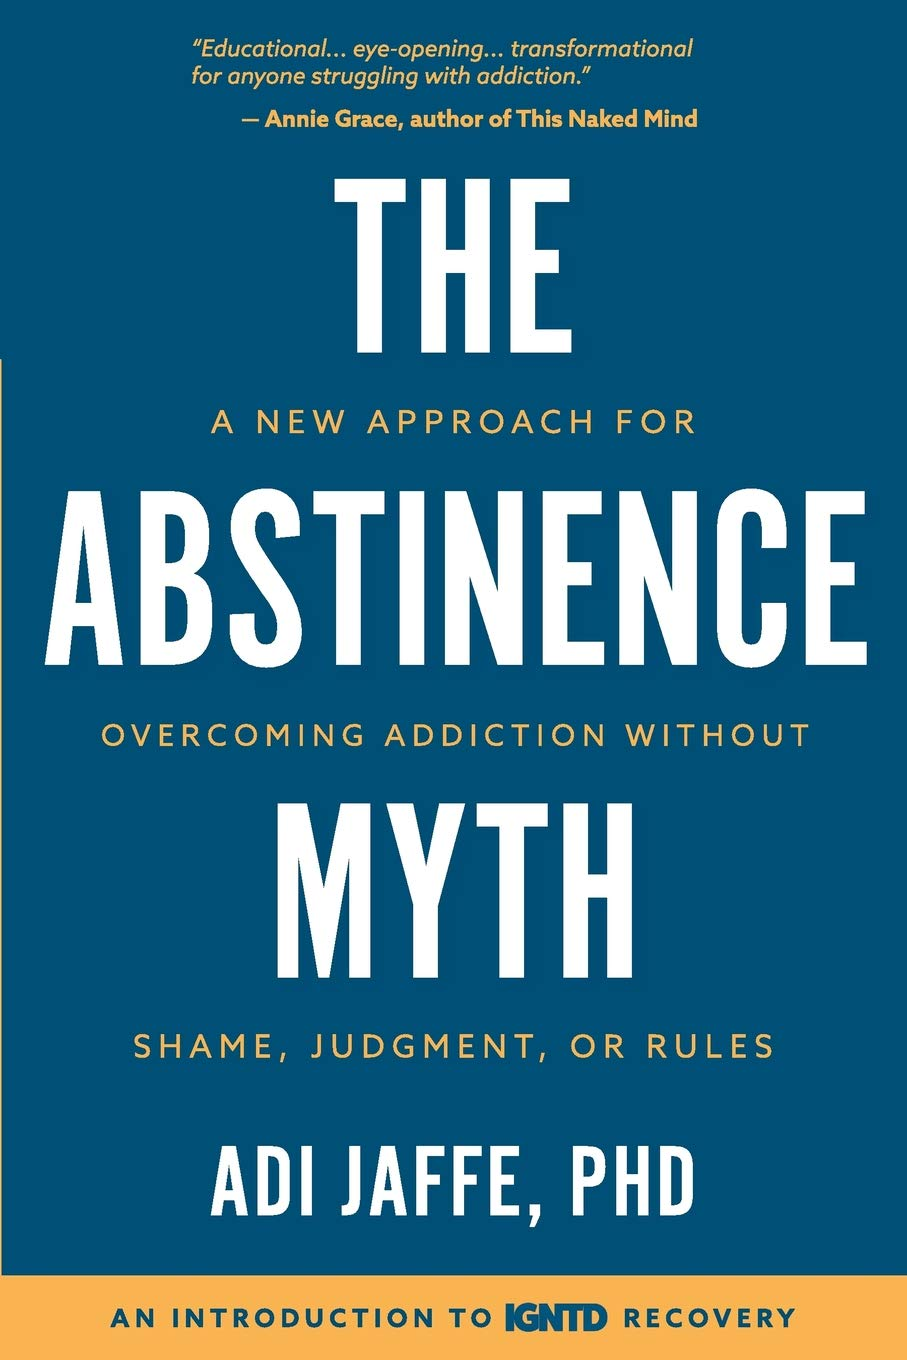 Image OfThe Abstinence Myth: A New Approach For Overcoming Addiction Without Shame, Judgment, Or Rules